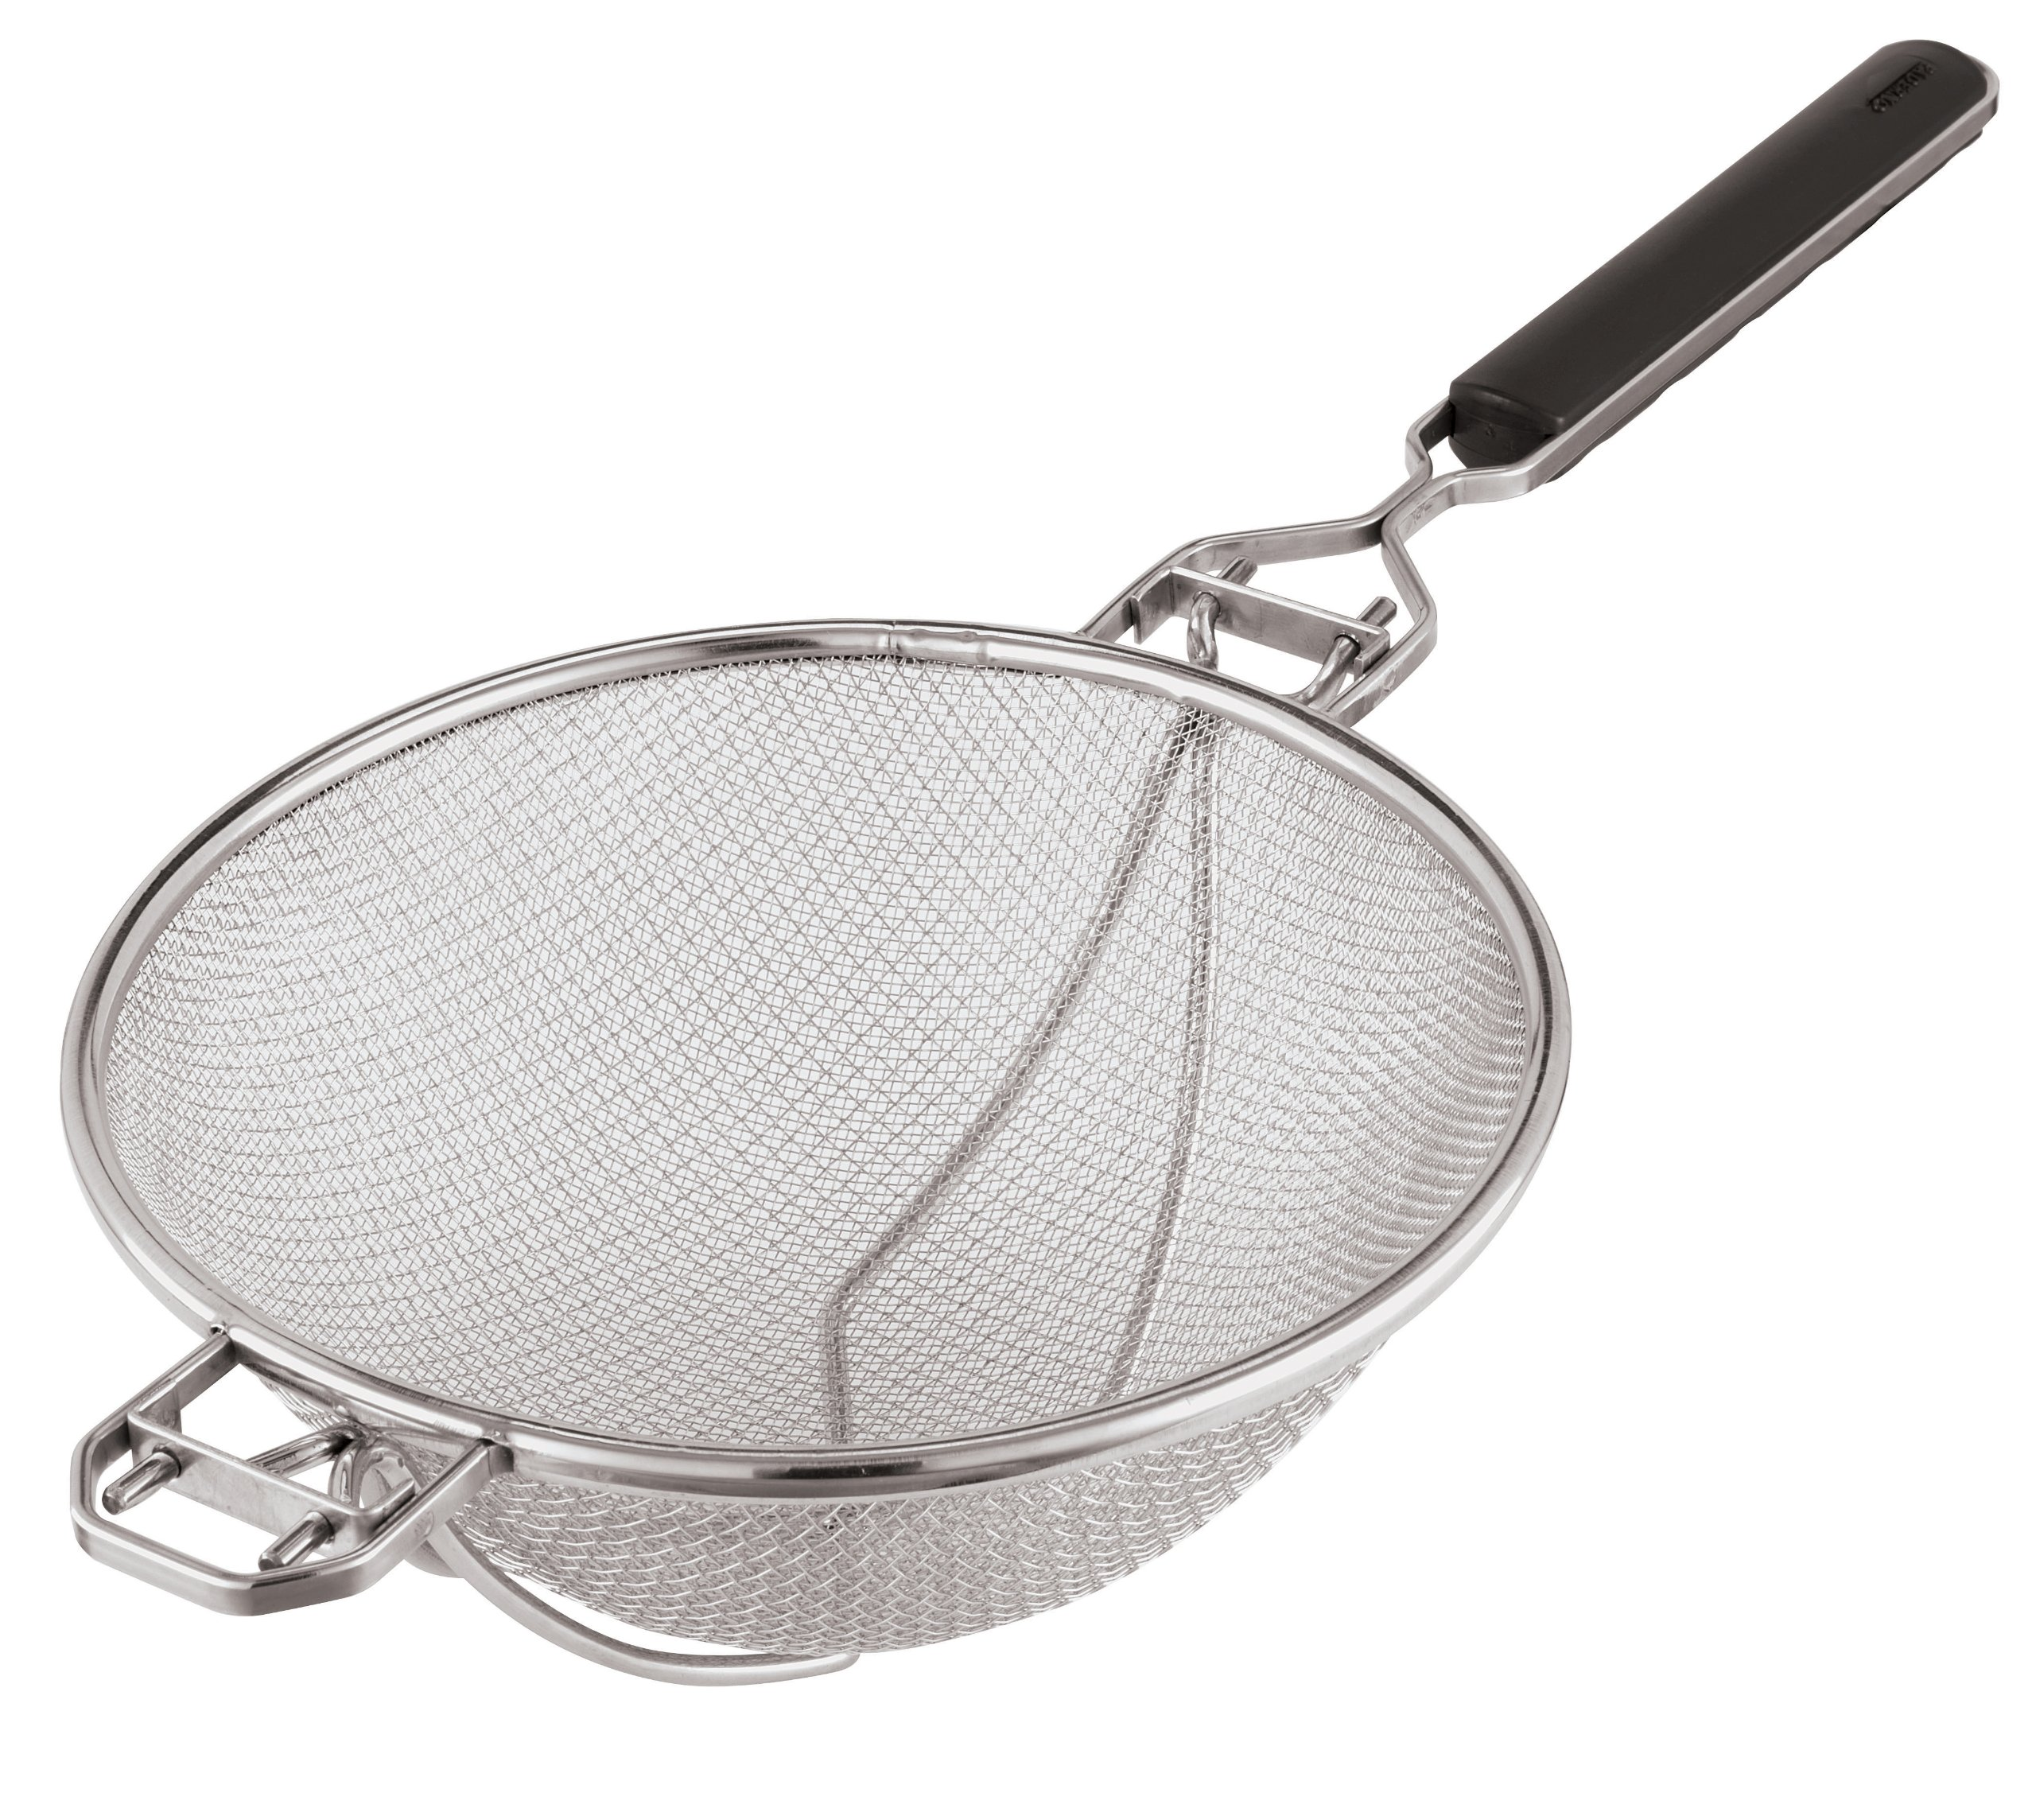 Paderno World Cuisine 13-3/4-Inch Stainless-steel Strainer with Reinforced Support